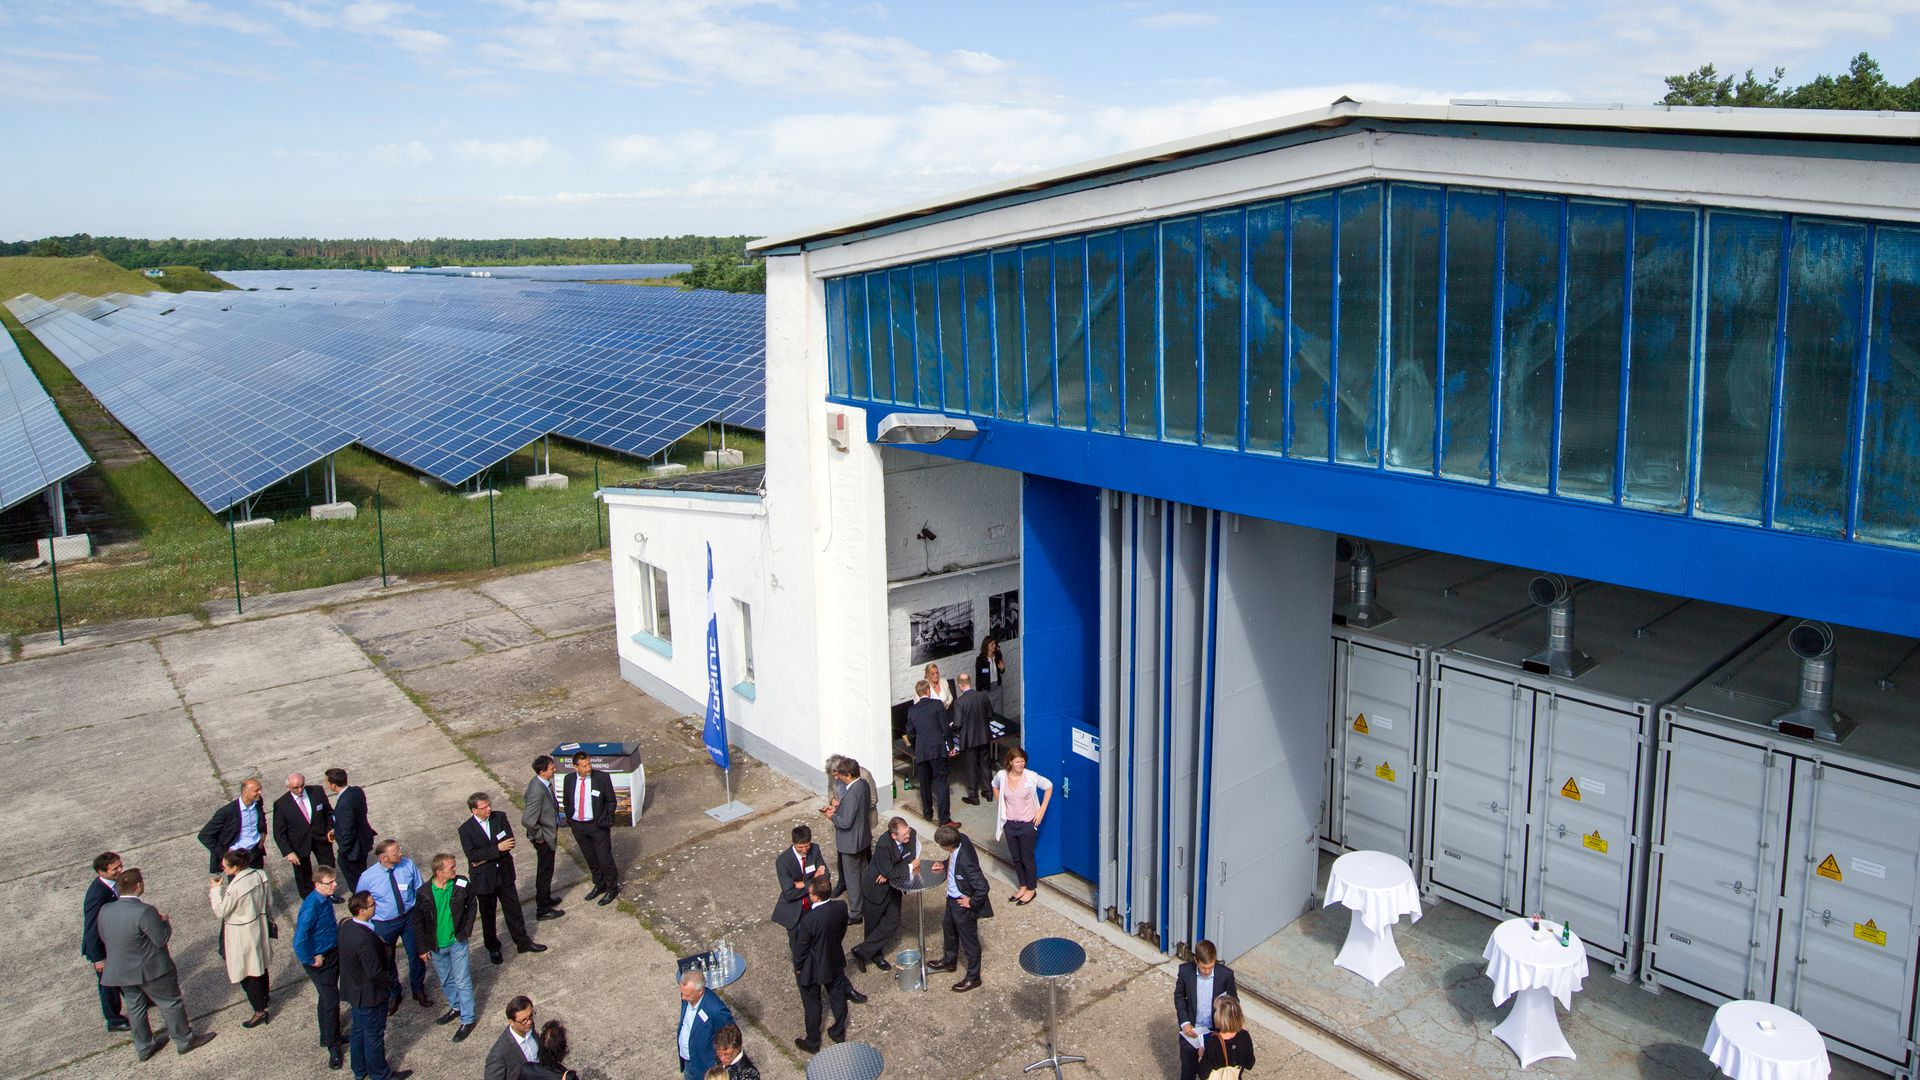 The new mass battery storage for electricity from a solar field is located in a former airplane hangar at the airfield in Neuhardenberg, Germany, 05 July 2016.